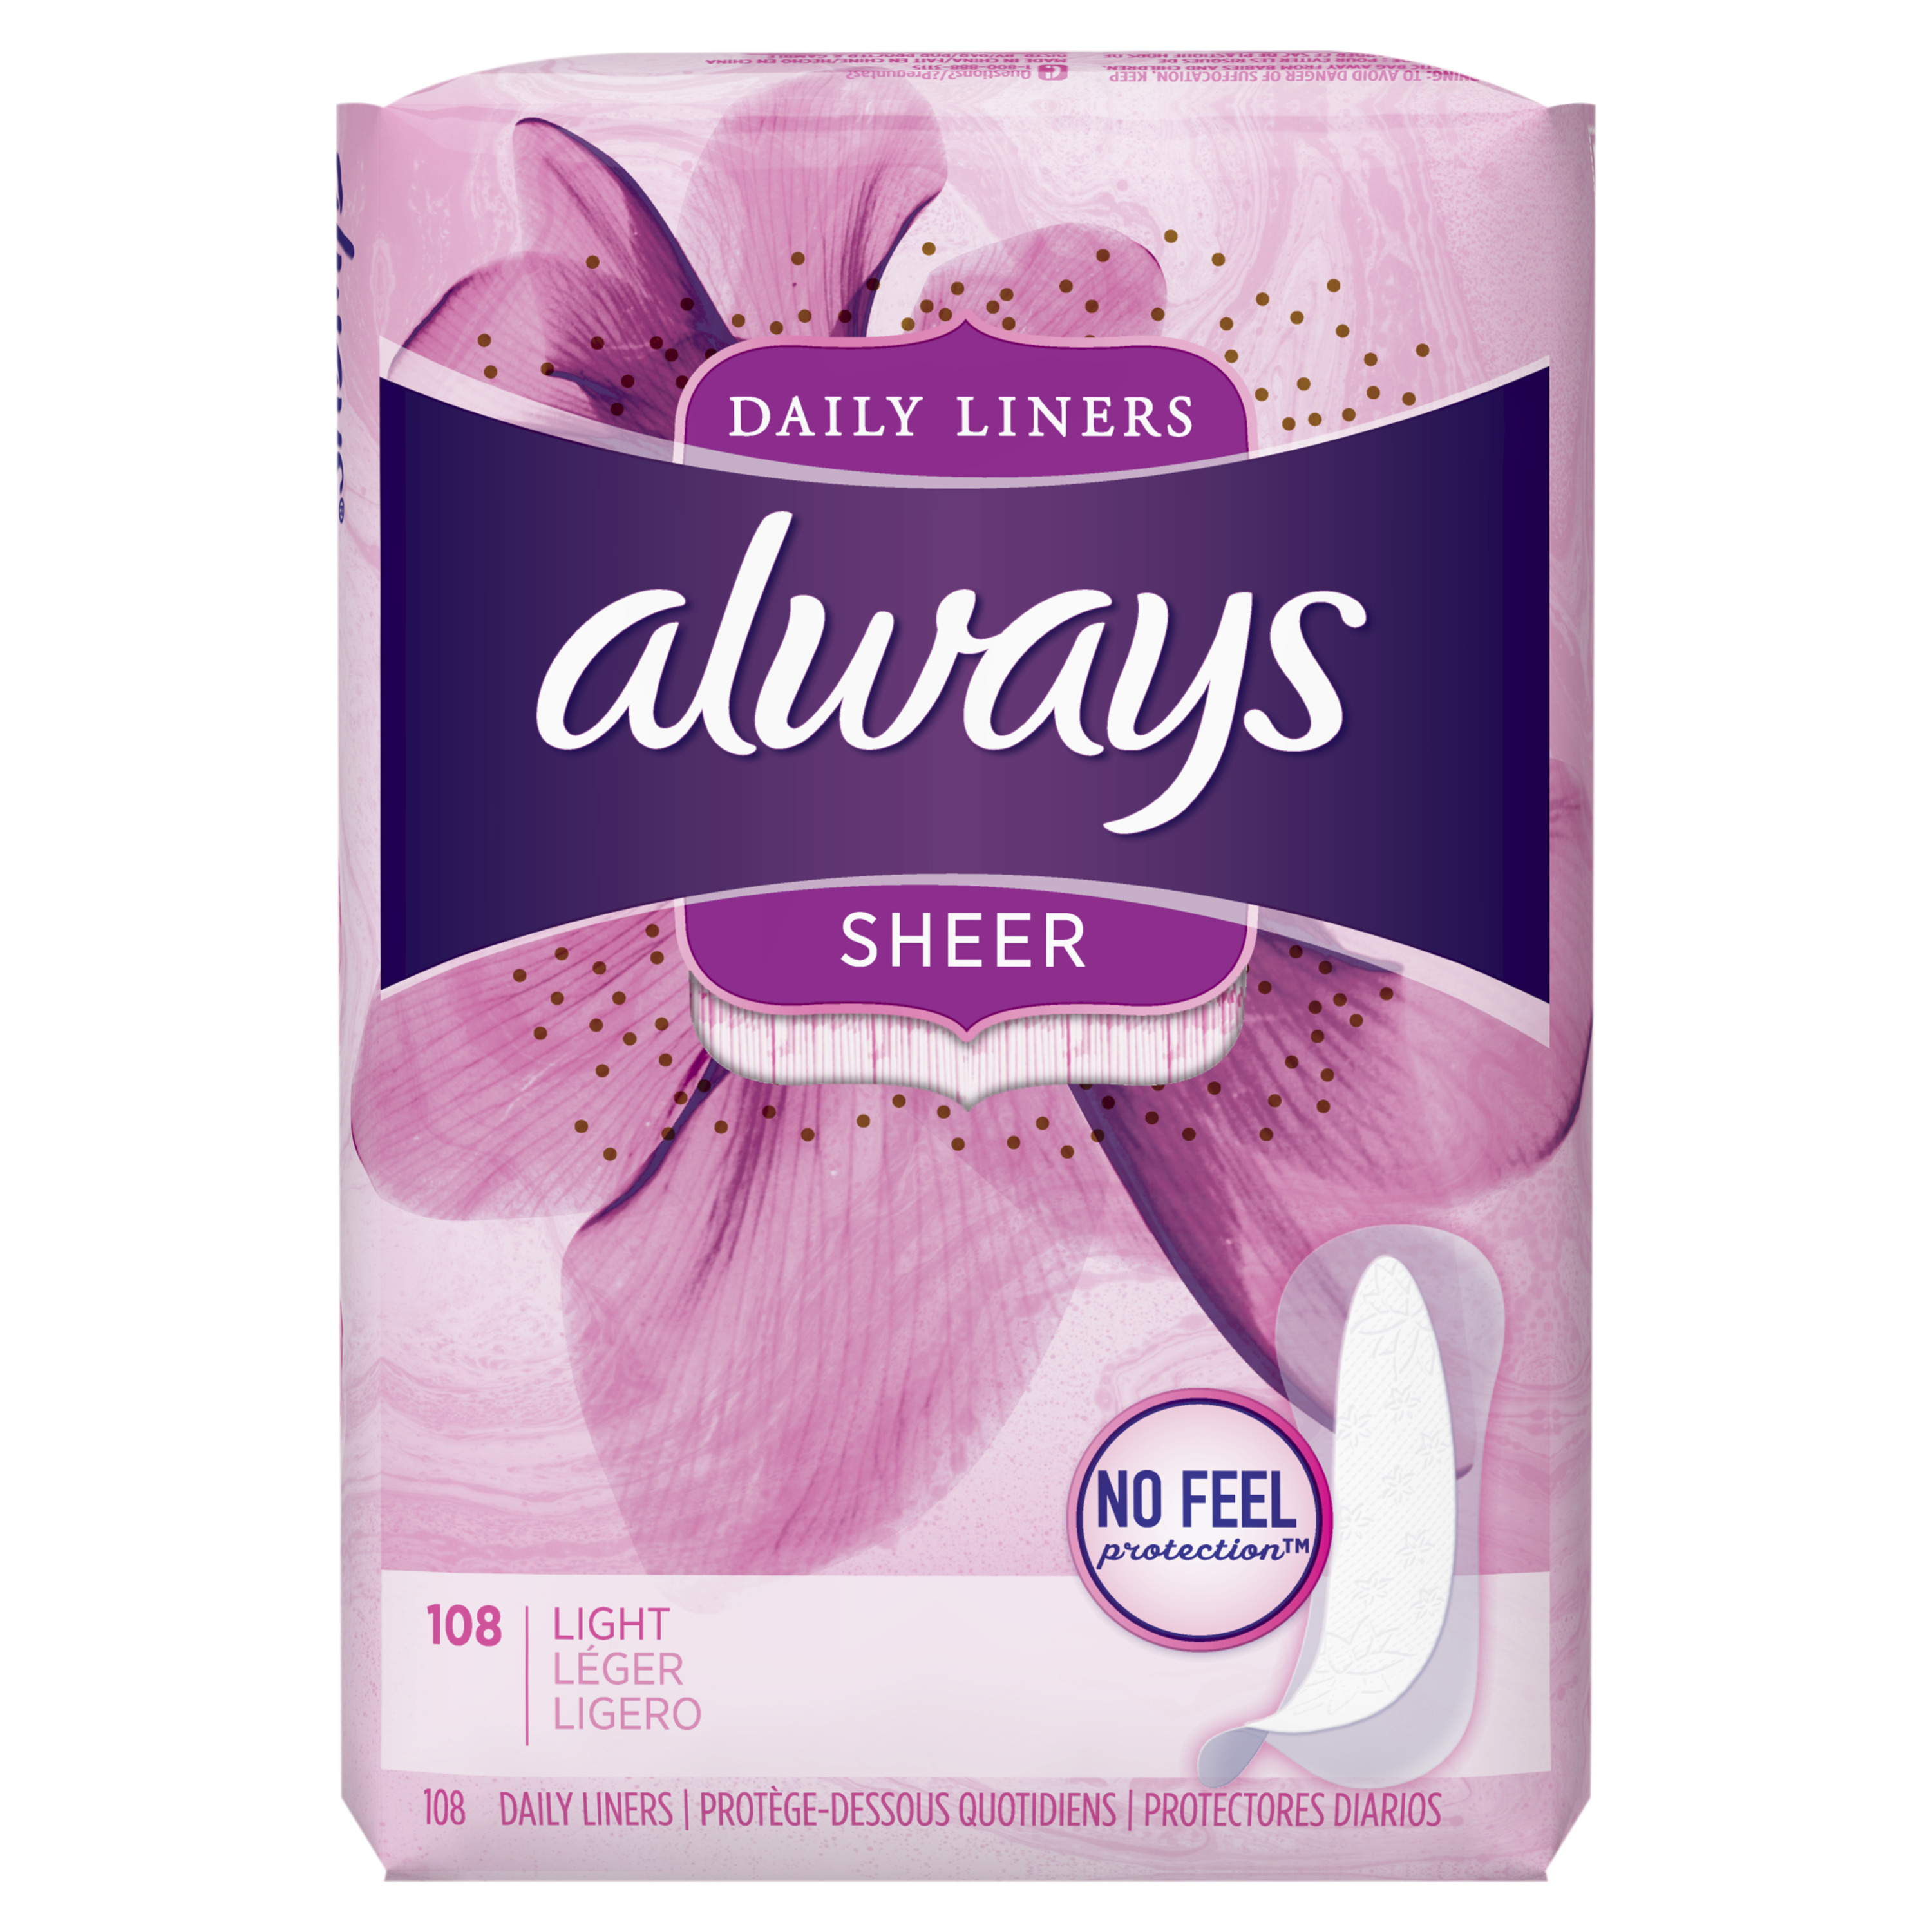 Always Sheer Daily Liners, Unscented, Wrapped, Light, 108 Count